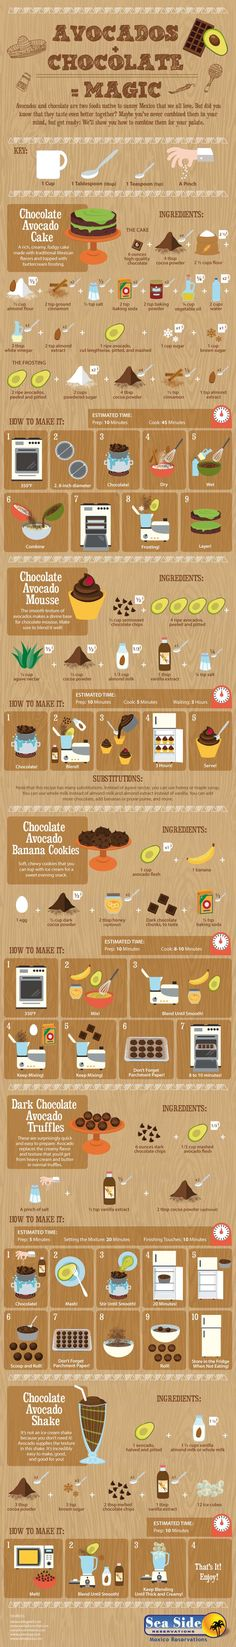 Avocados + Chocolate = Magic! #vegan